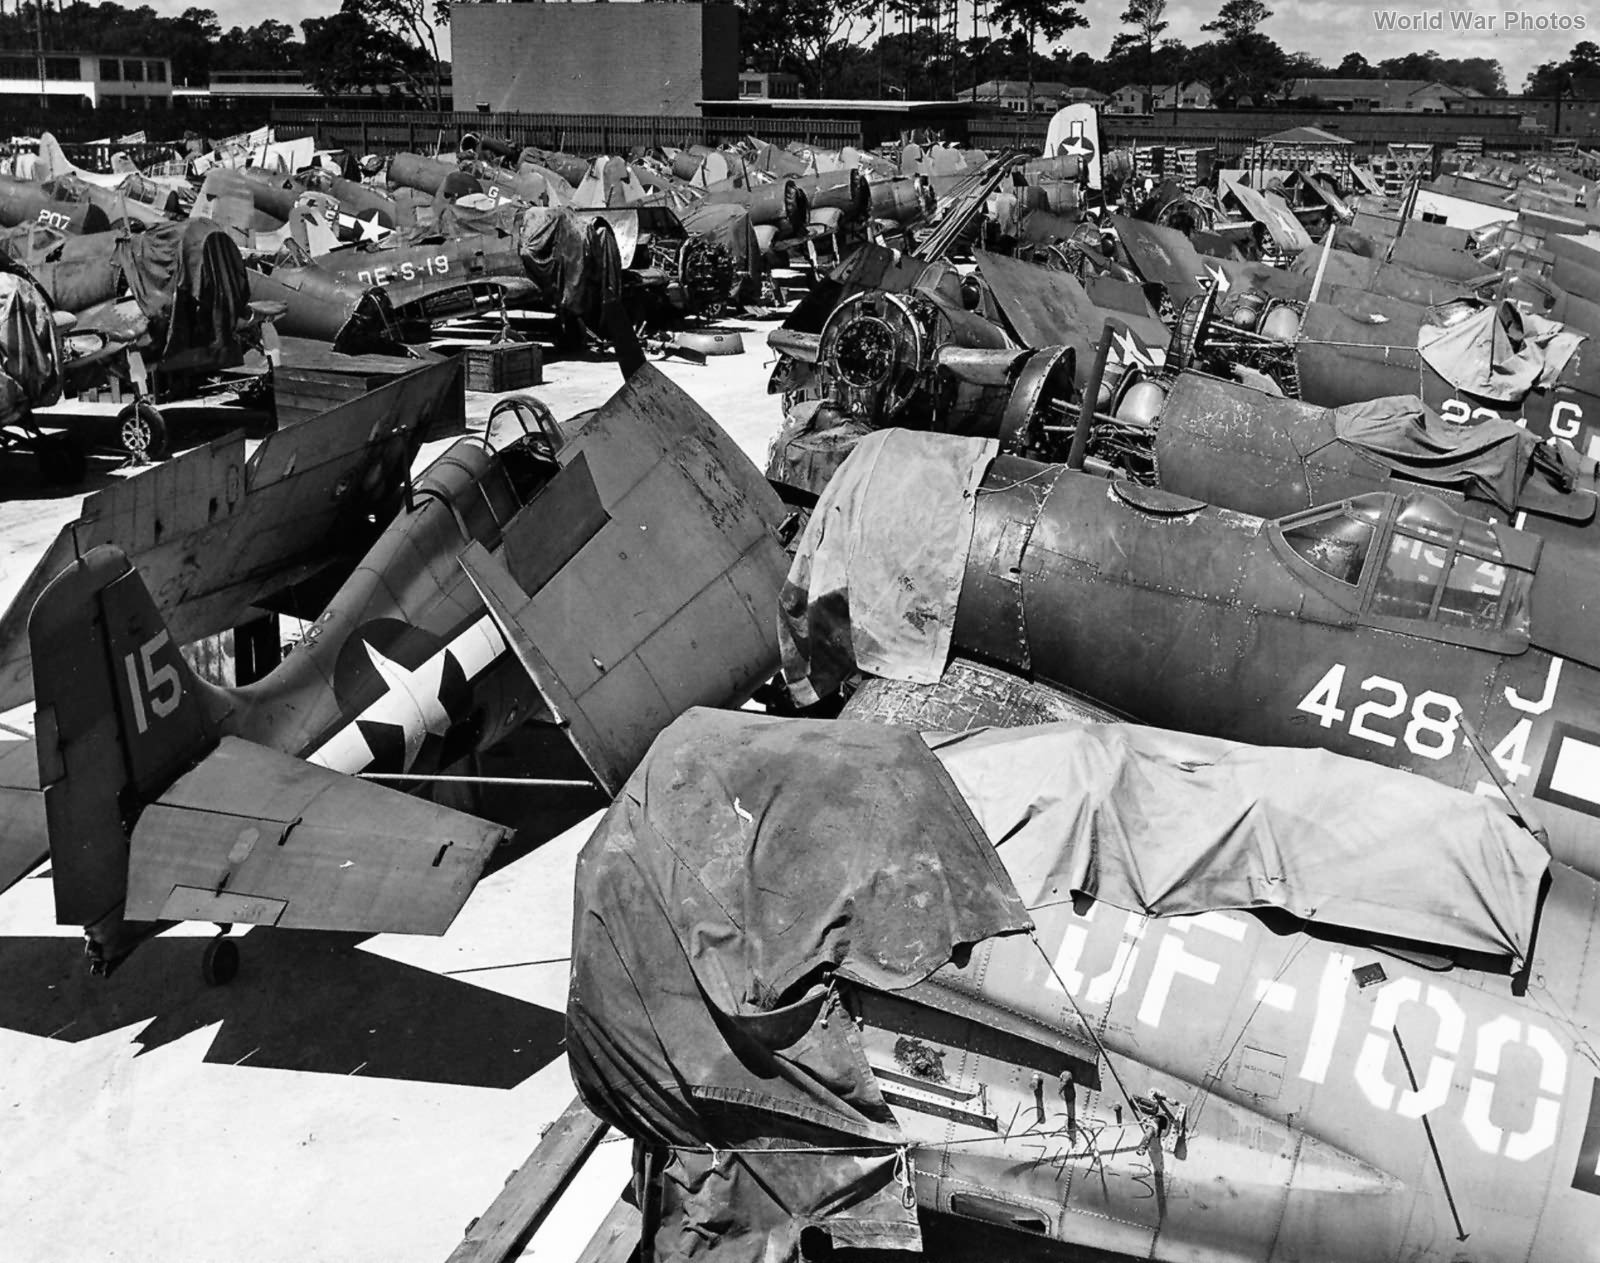 US Navy fighter depot with F6F, F4F and F4U